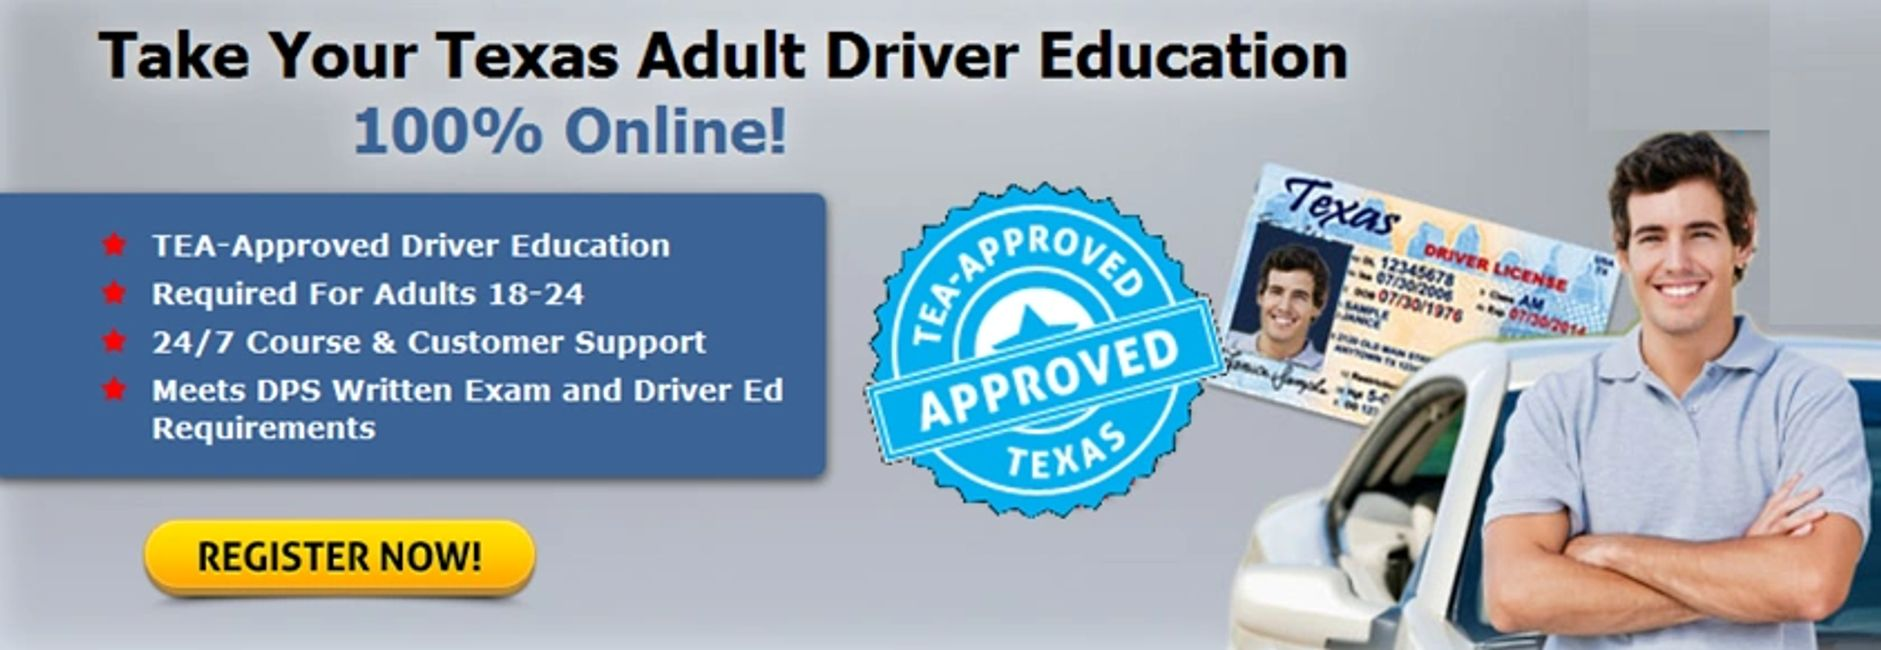 Texas Adult Drivers Education registration image